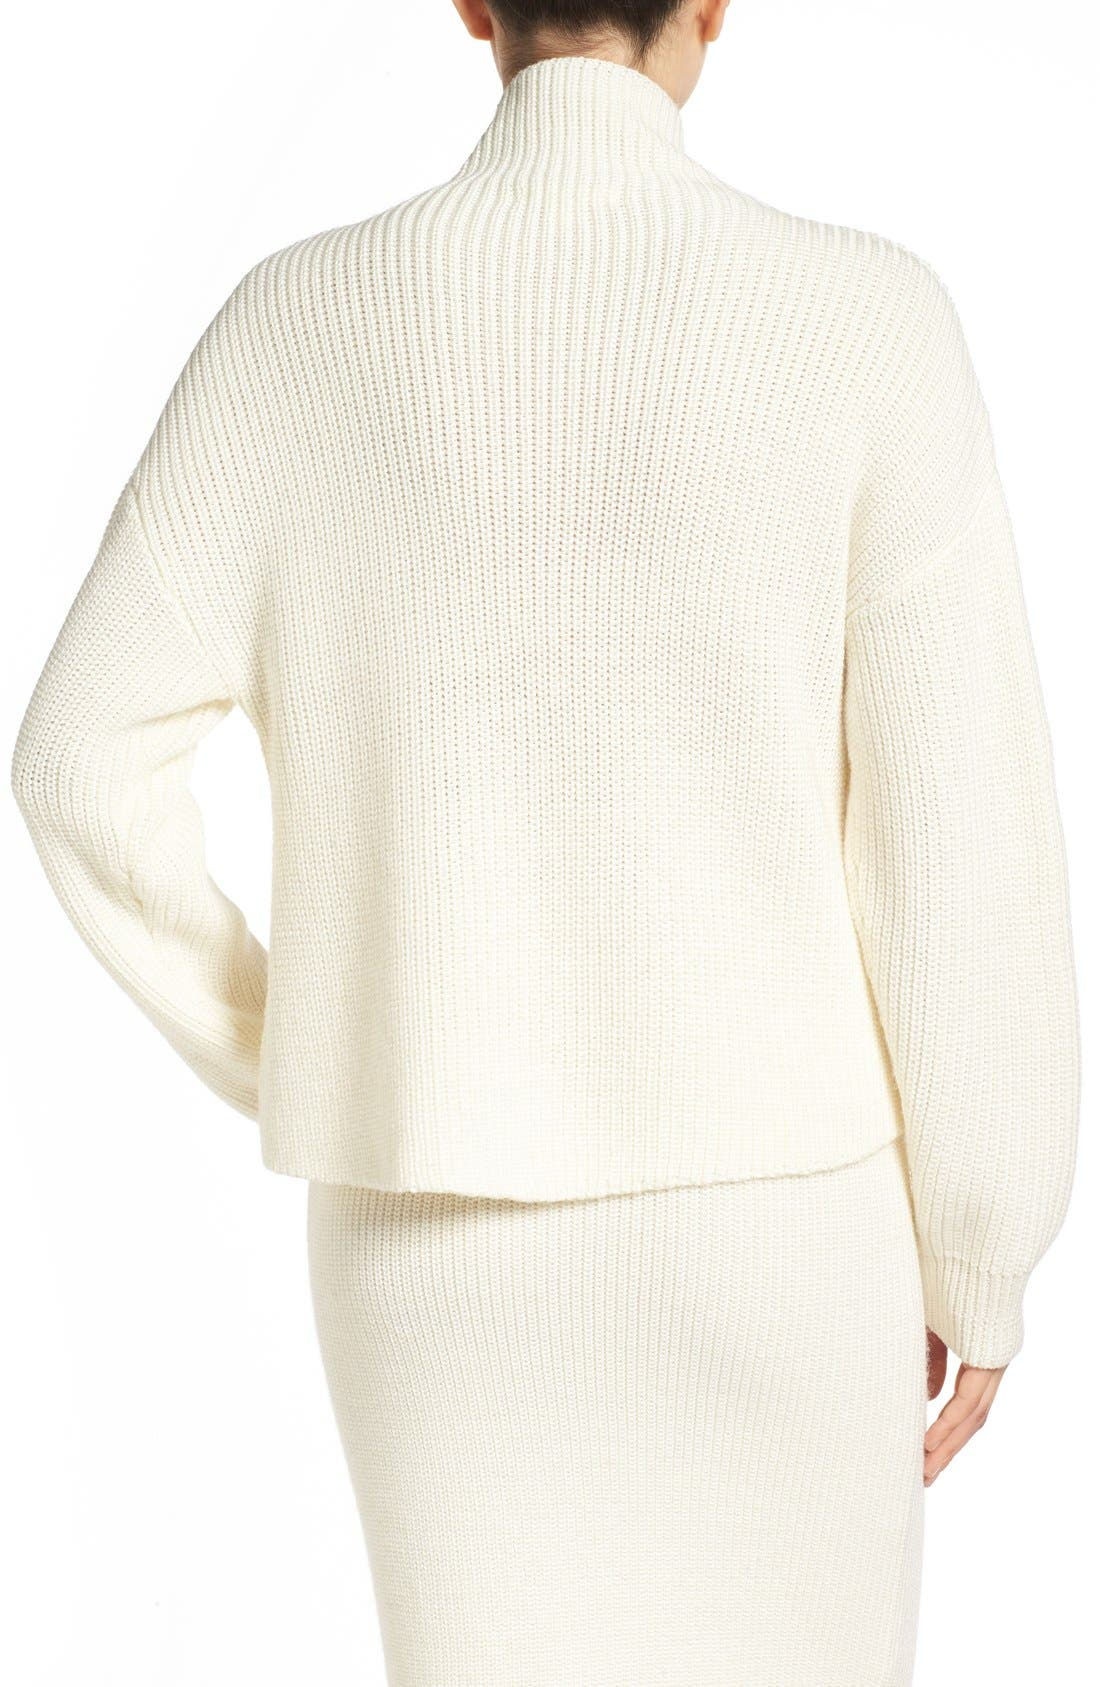 by Lauren Conrad 'Vancouver' Funnel Neck Sweater,                             Alternate thumbnail 4, color,                             100